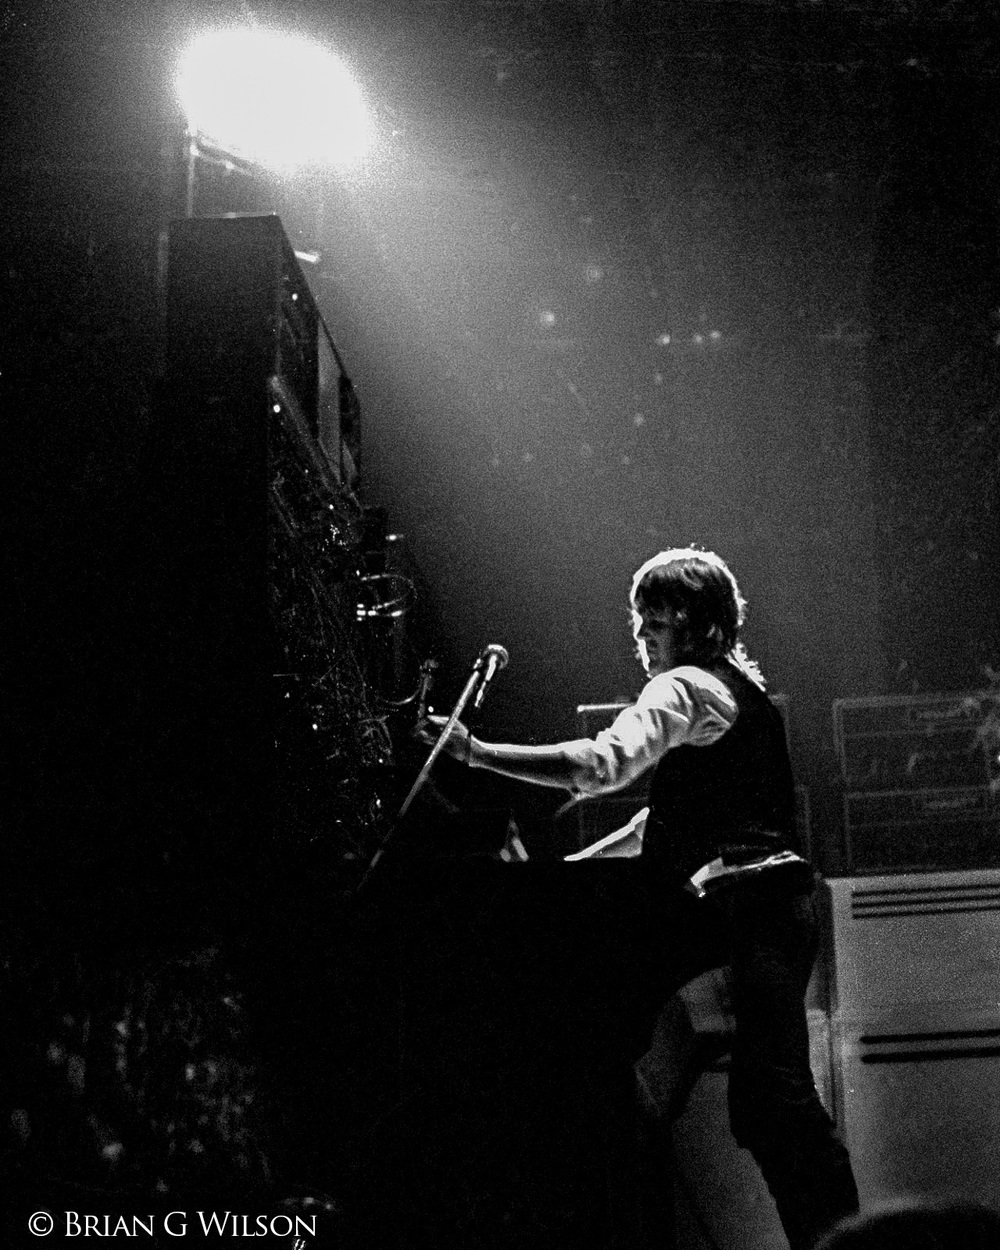 Keith Emerson at the mighty Moog monolith, April 1974.